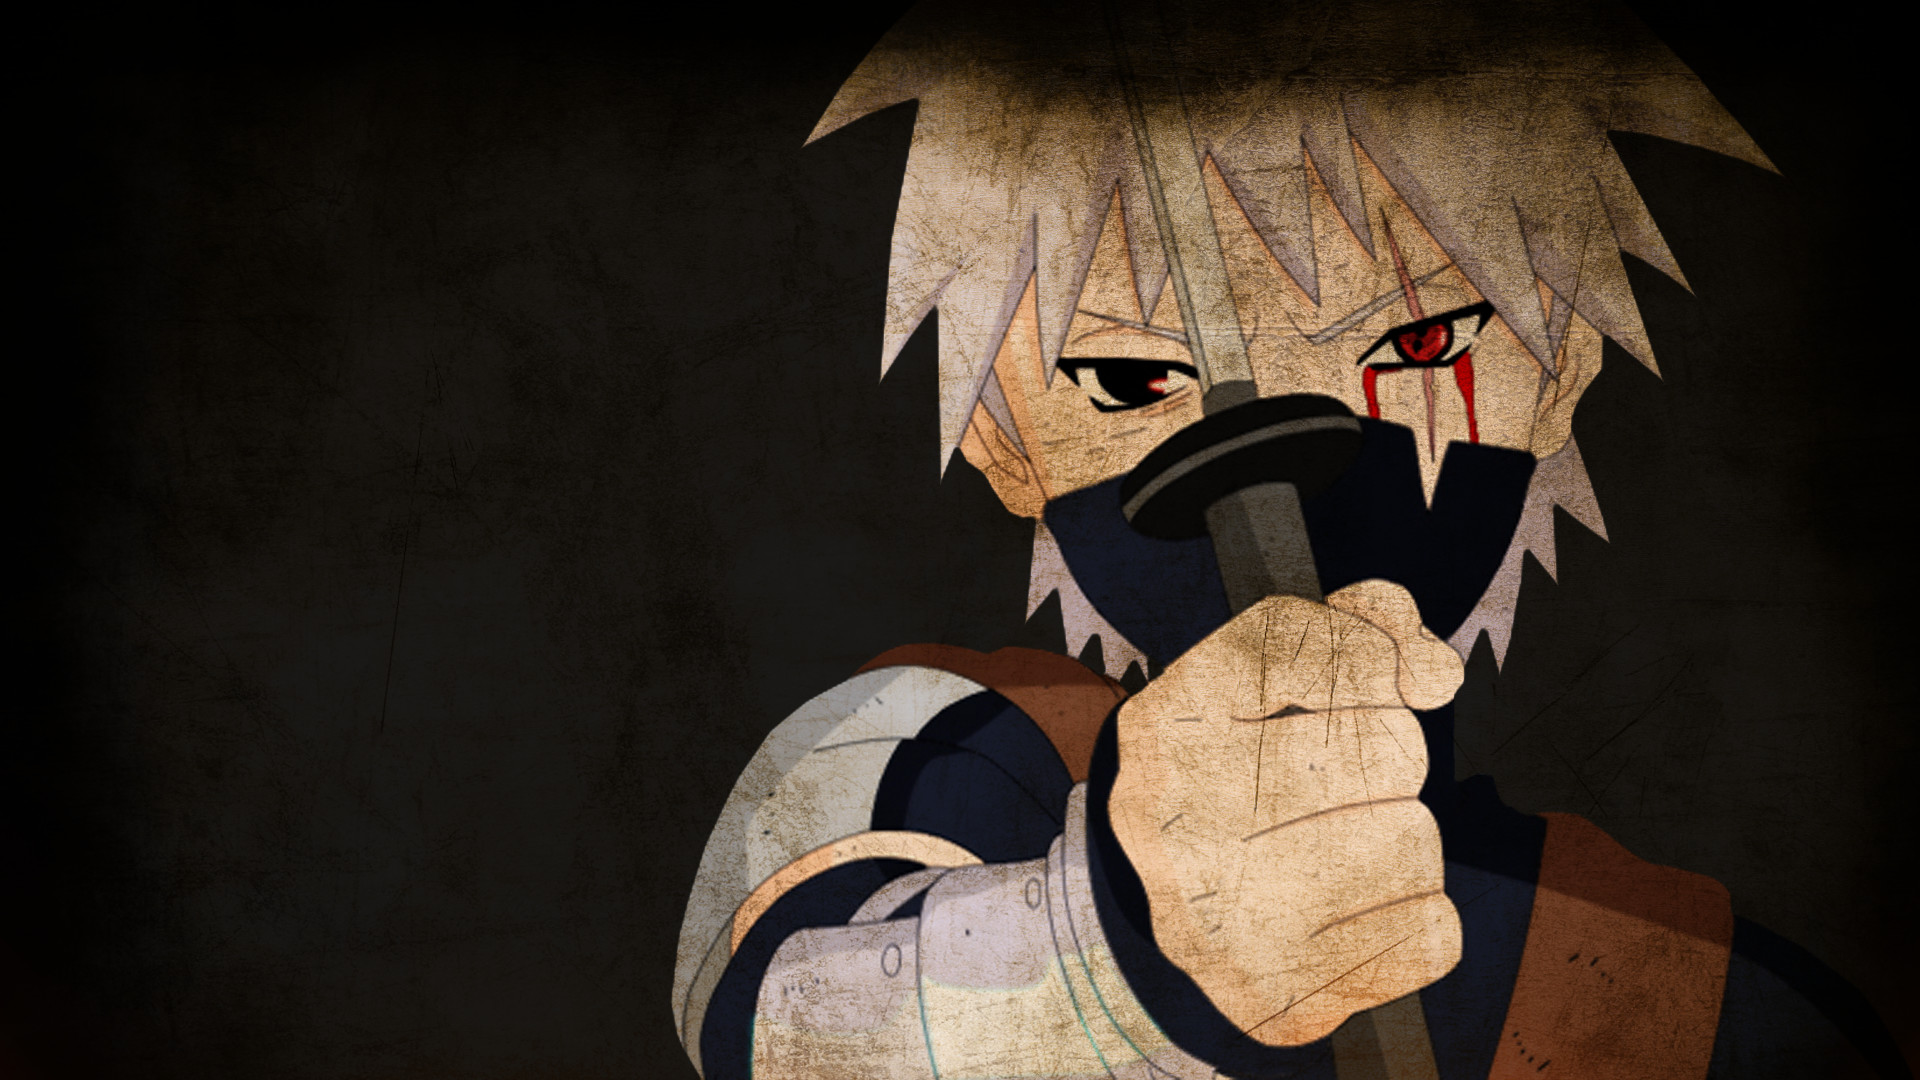 1920x1080 Kakashi Wallpaper by Jackydile Kakashi Wallpaper by Jackydile